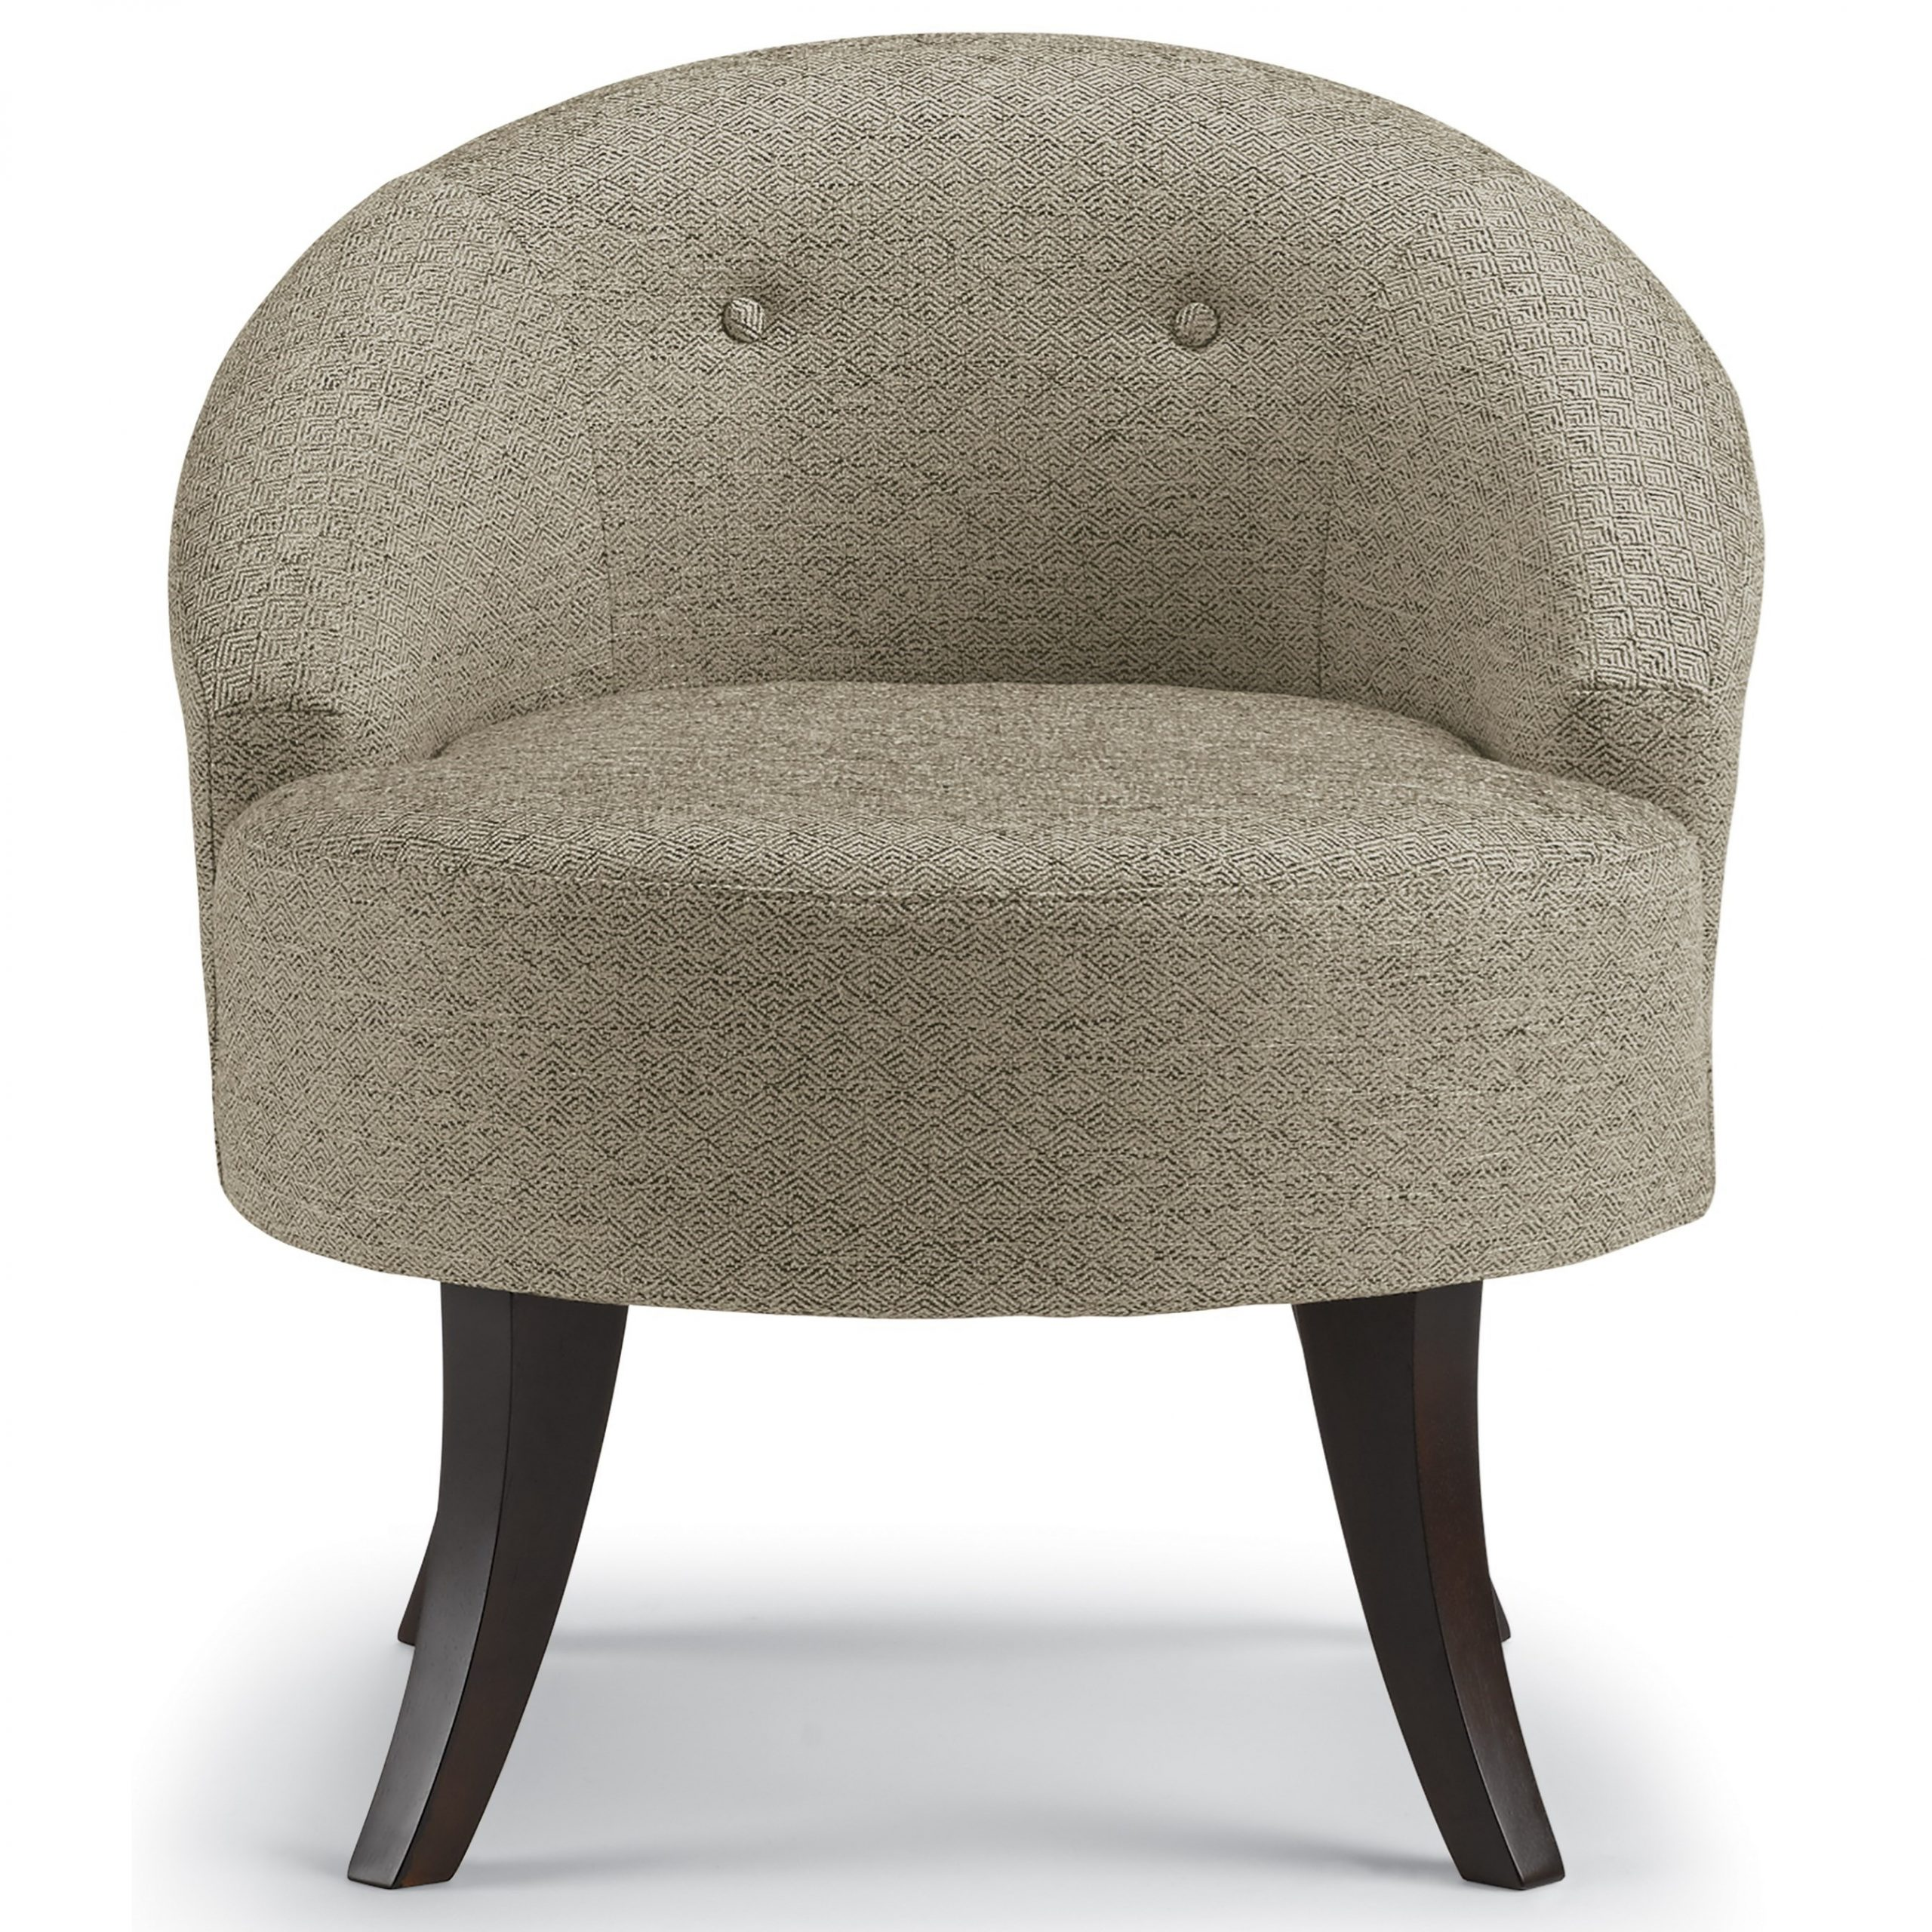 Best Home Furnishings Best Xpress – Vann Contemporary Swivel Throughout Louisiana Barrel Chair And Ottoman Sets (View 6 of 15)